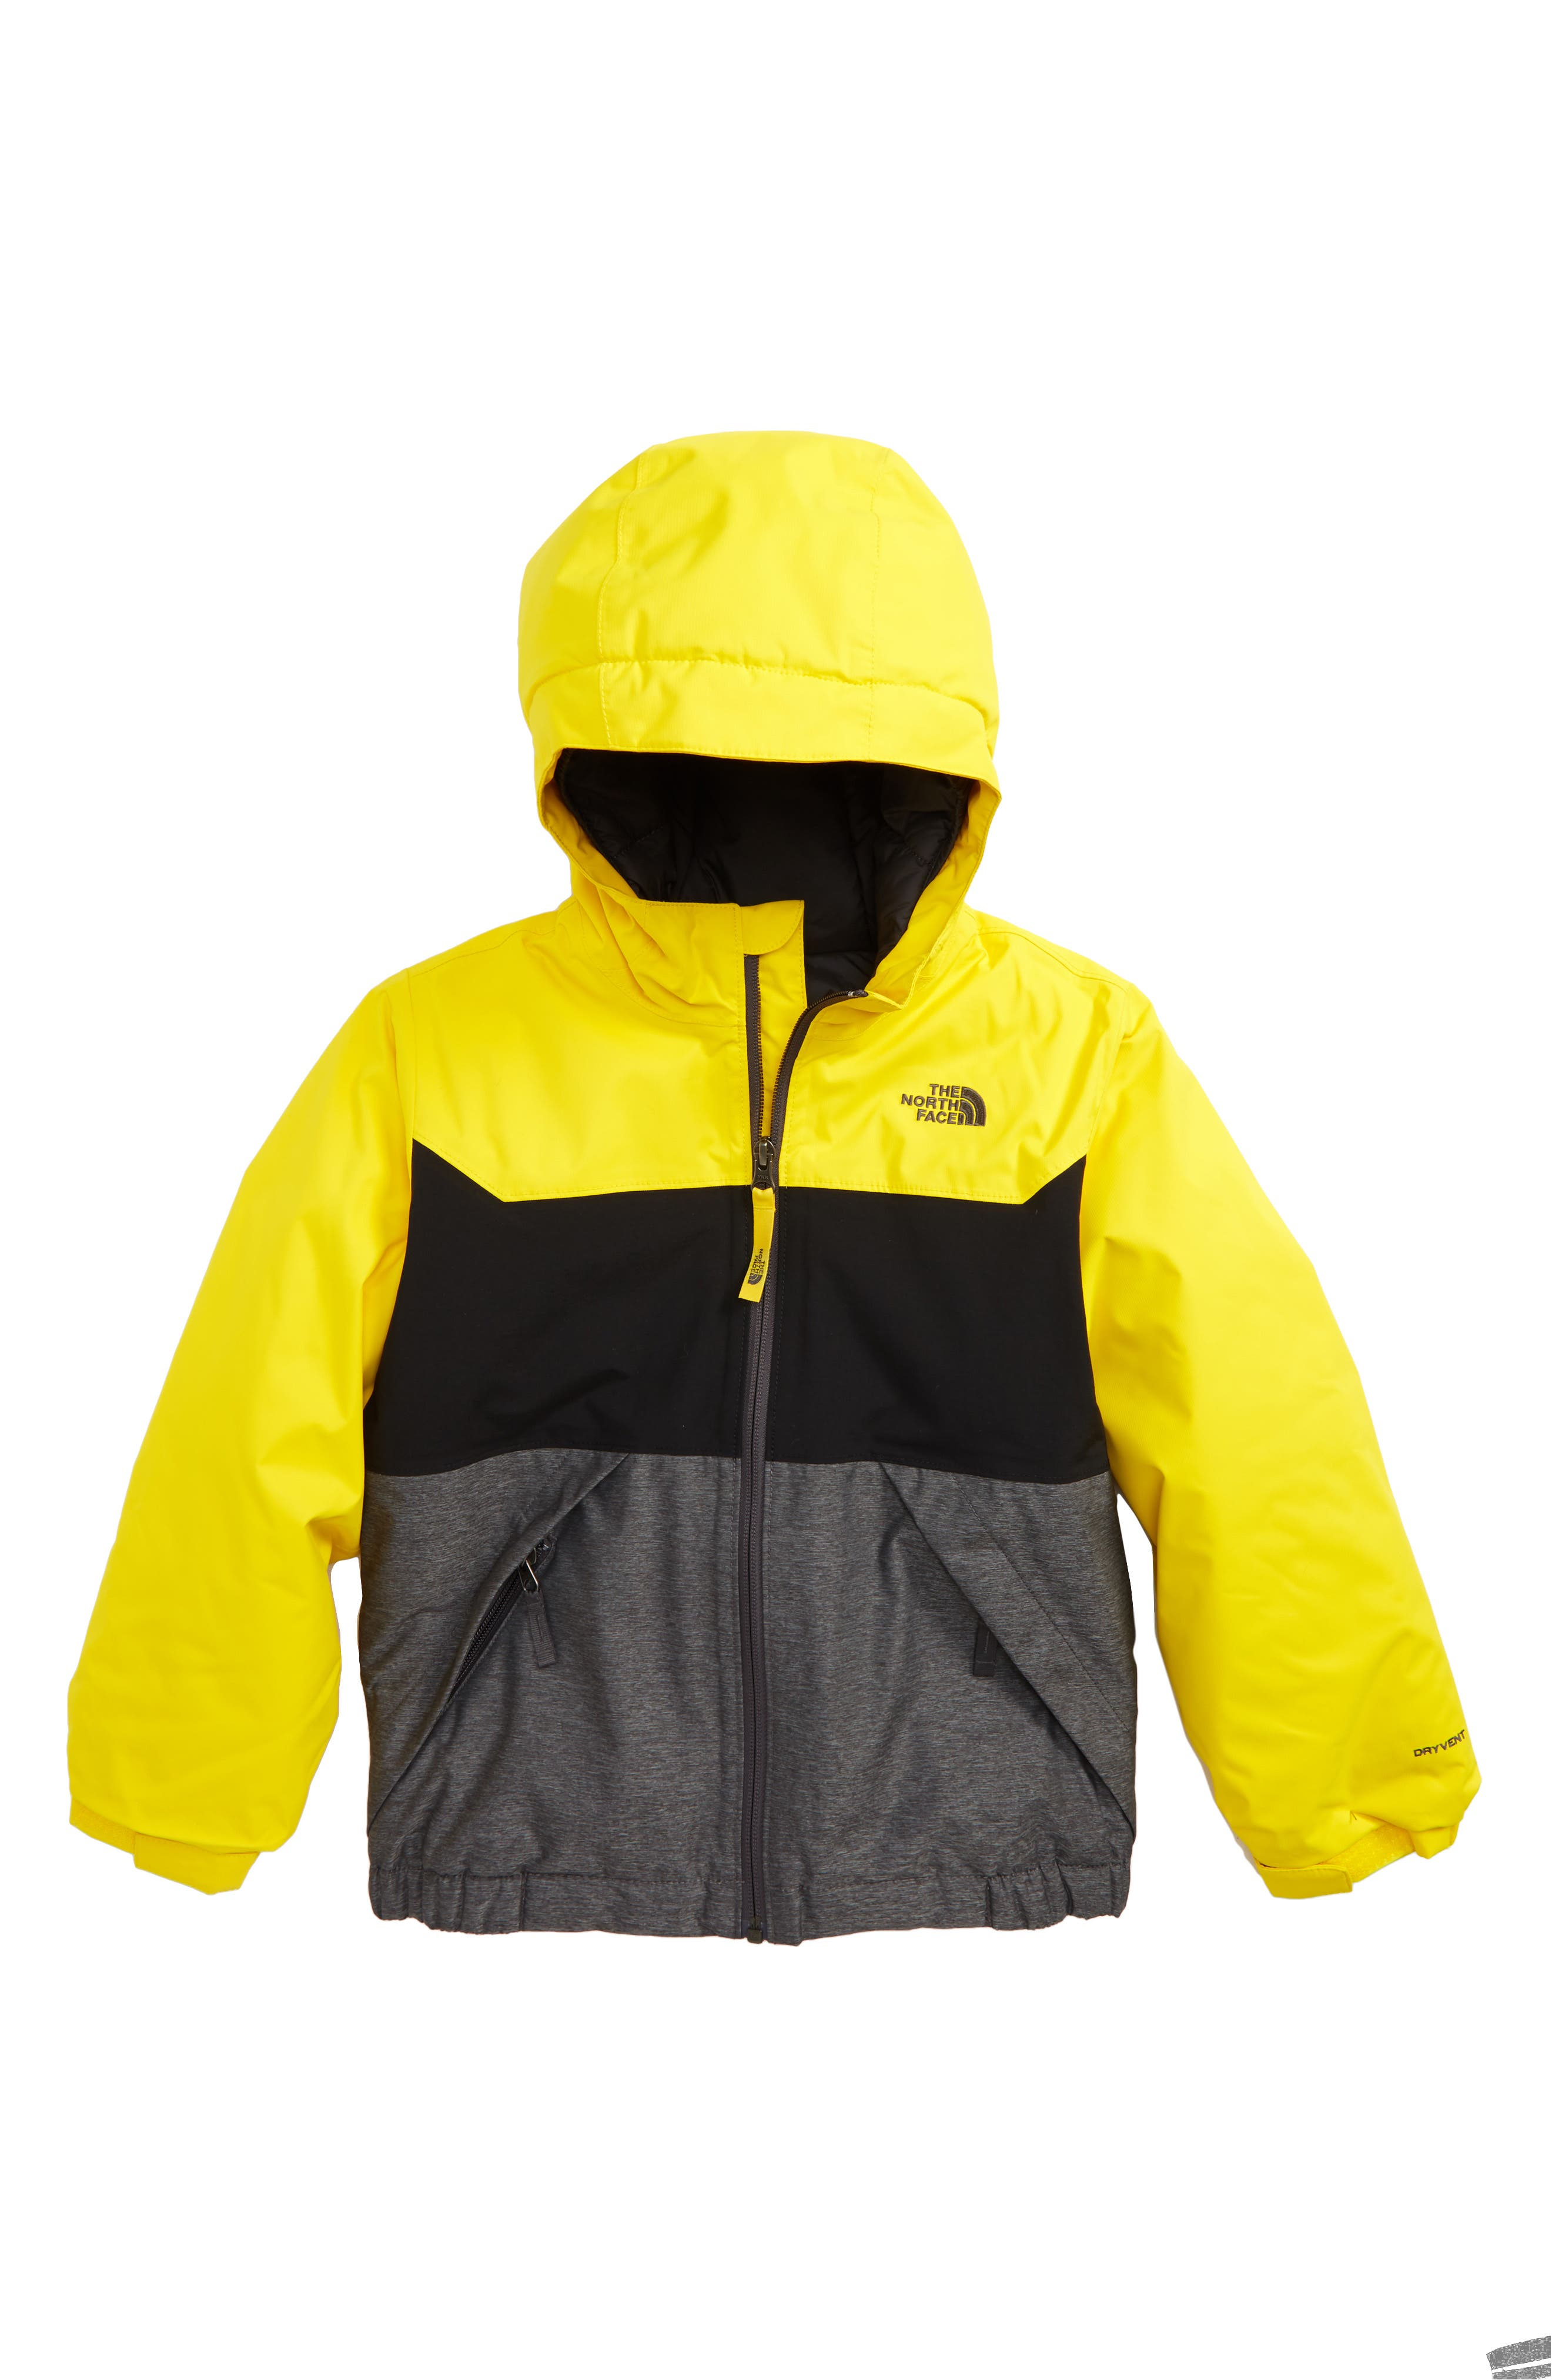 Brayden Heatseeker<sup>™</sup> Insulated Waterproof & Windproof Jacket,                             Main thumbnail 1, color,                             Canary Yellow